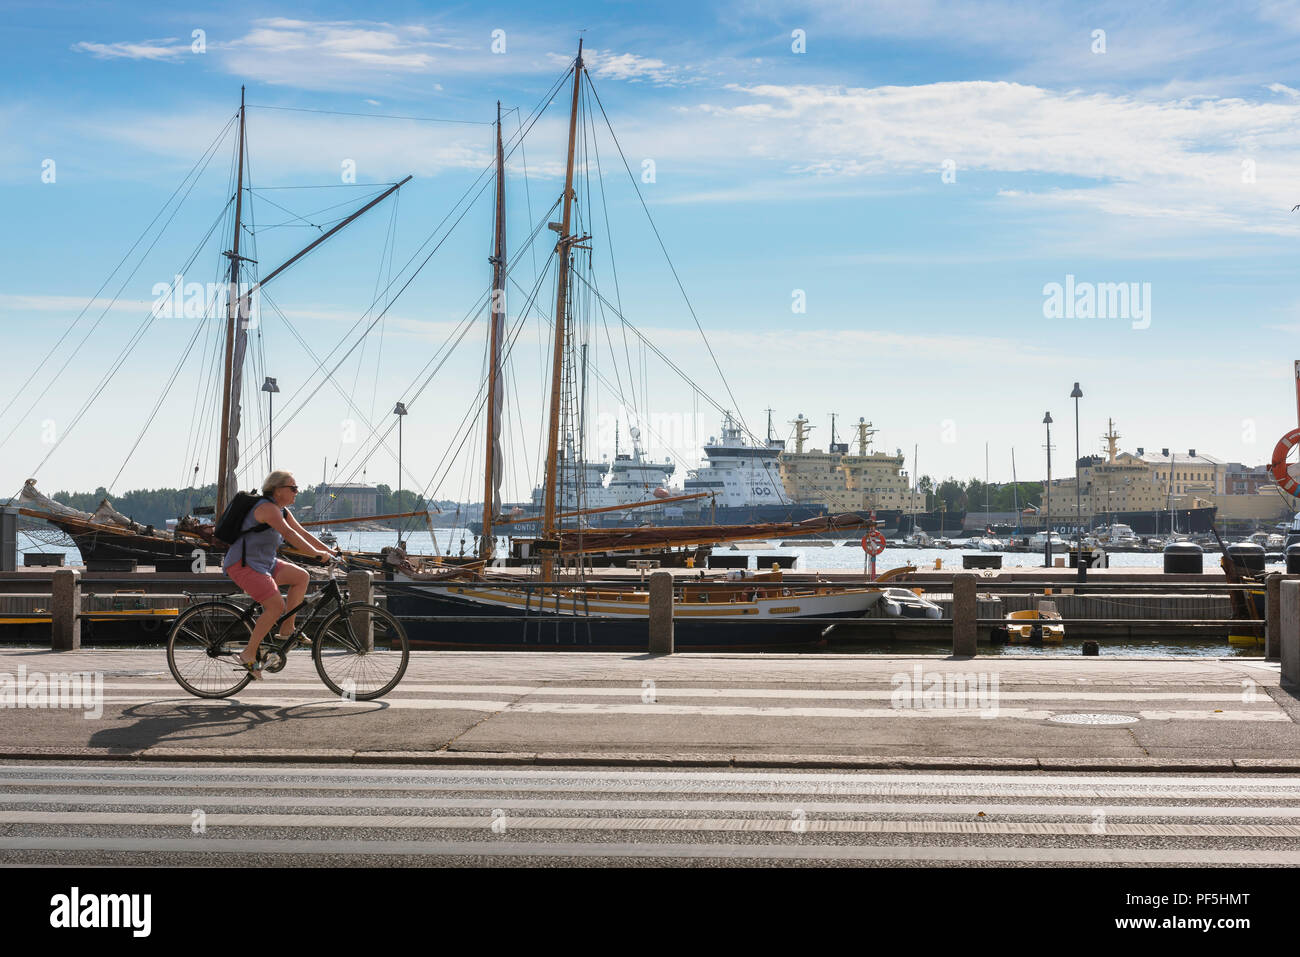 Finland cycling summer, view of a woman cycling along the harbor front in the city of Helsinki on a summer morning, Finland. Stock Photo